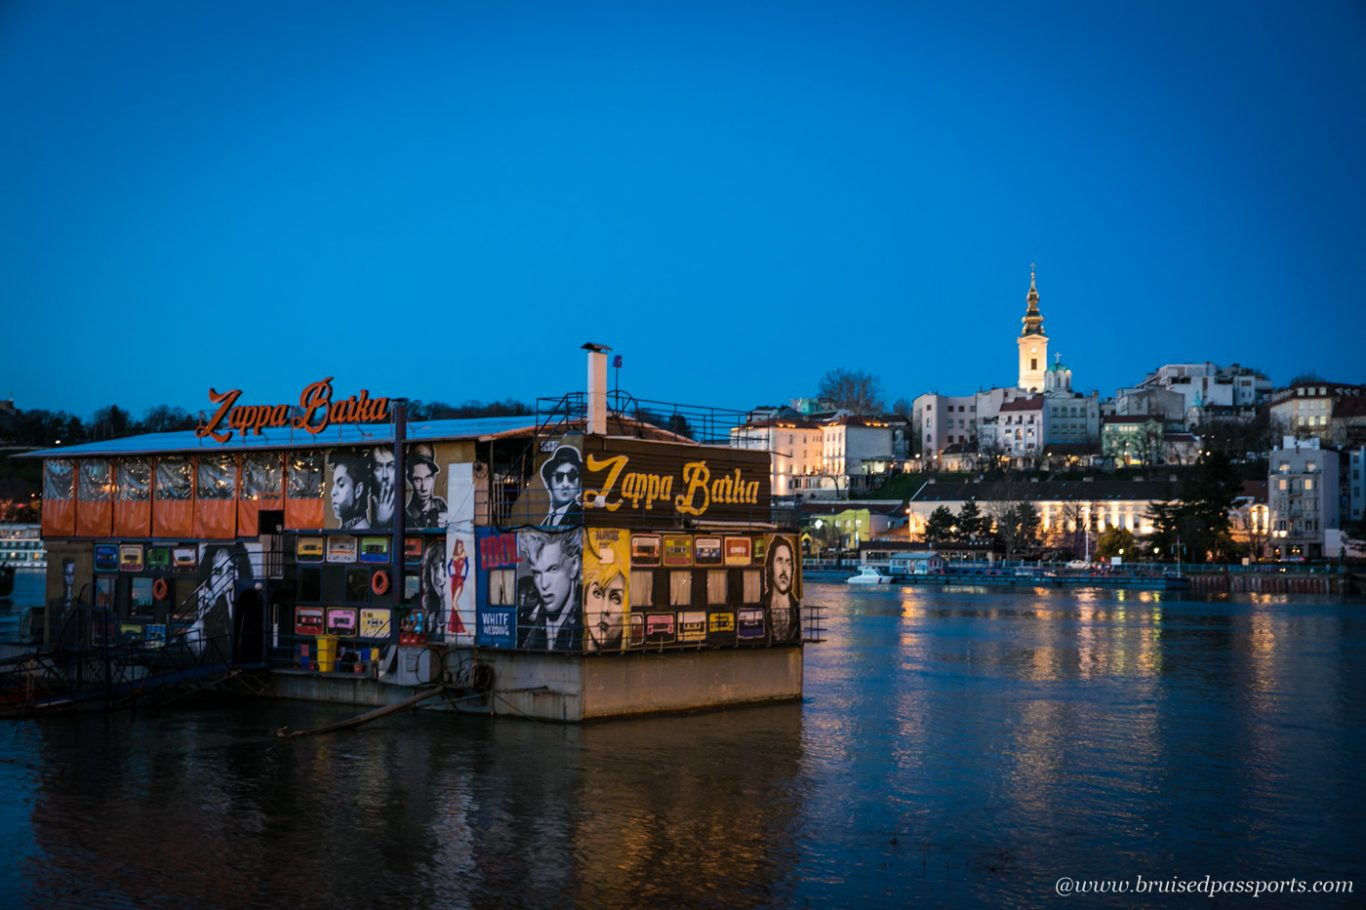 floating nightclub on Sava river in Belgrade